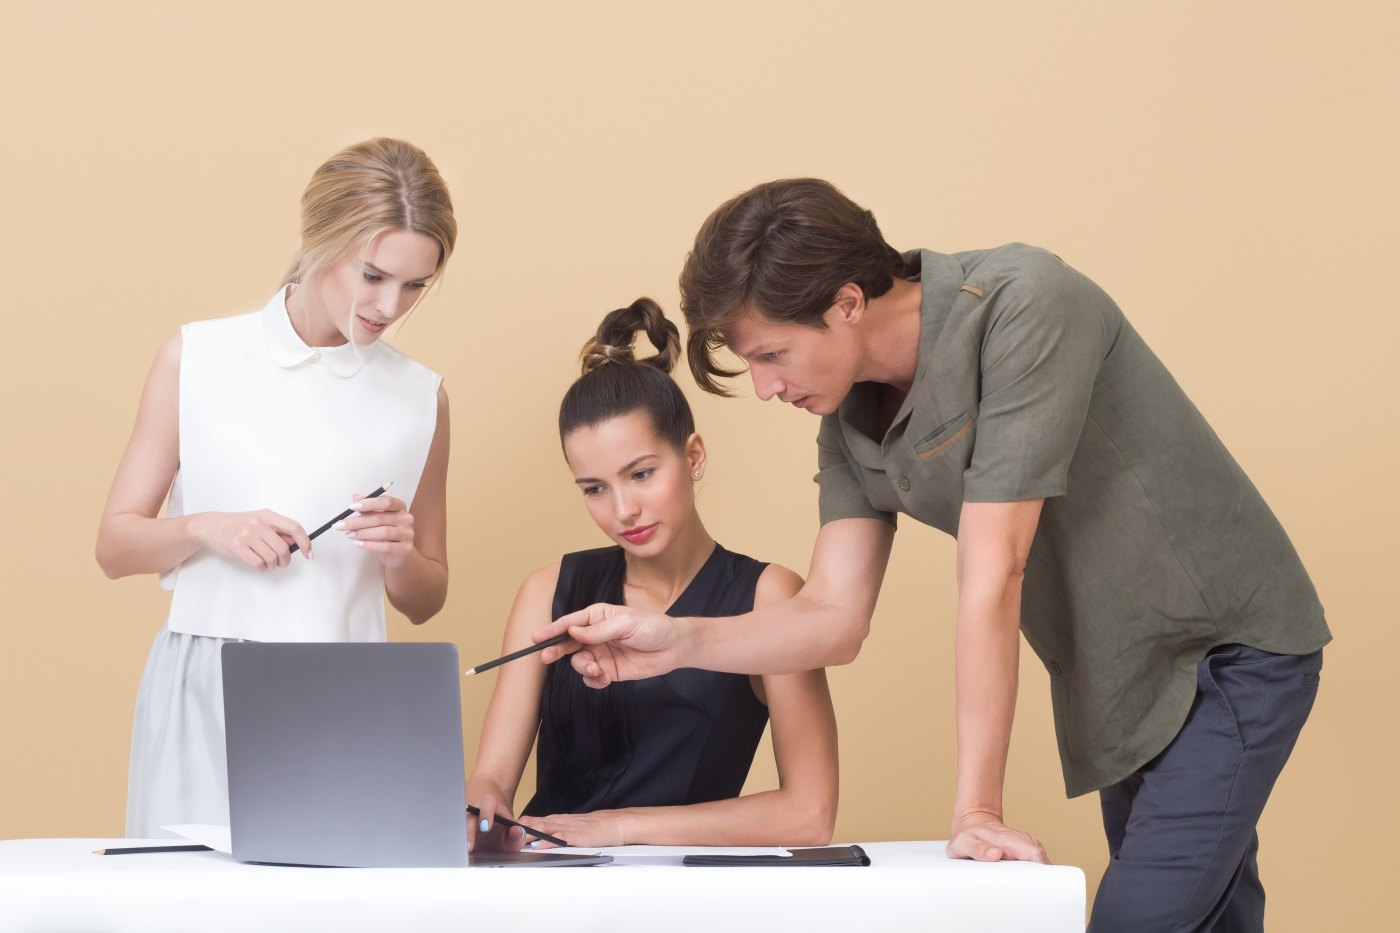 three employees looking at one laptop with one being the clear leader discussing their future leadership roles with the organization Photo by Icons8 team on Unsplash